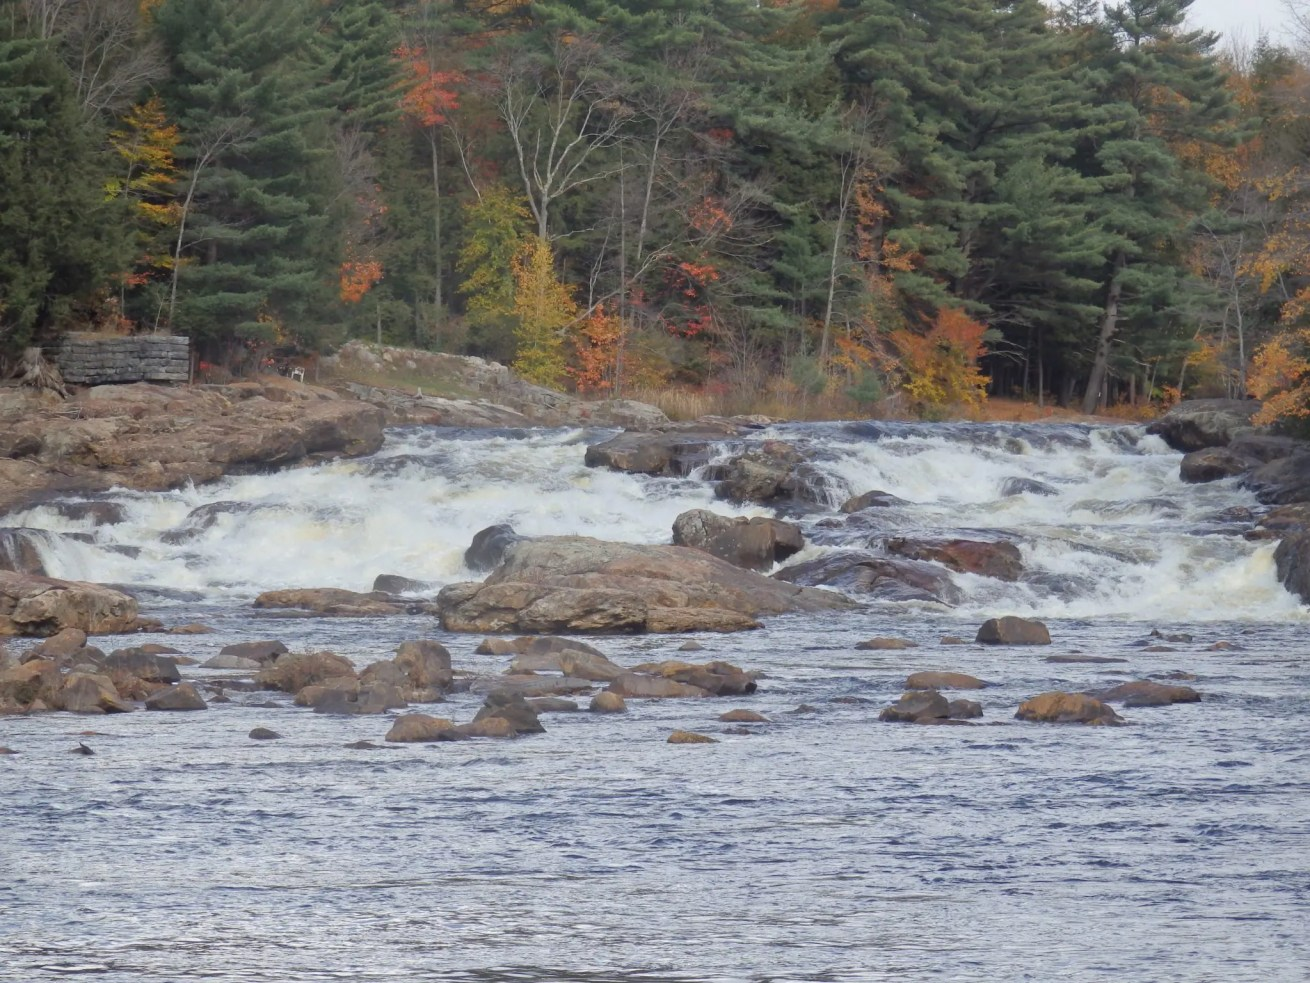 Shurform Falls, Moose River, Lewis County, New York